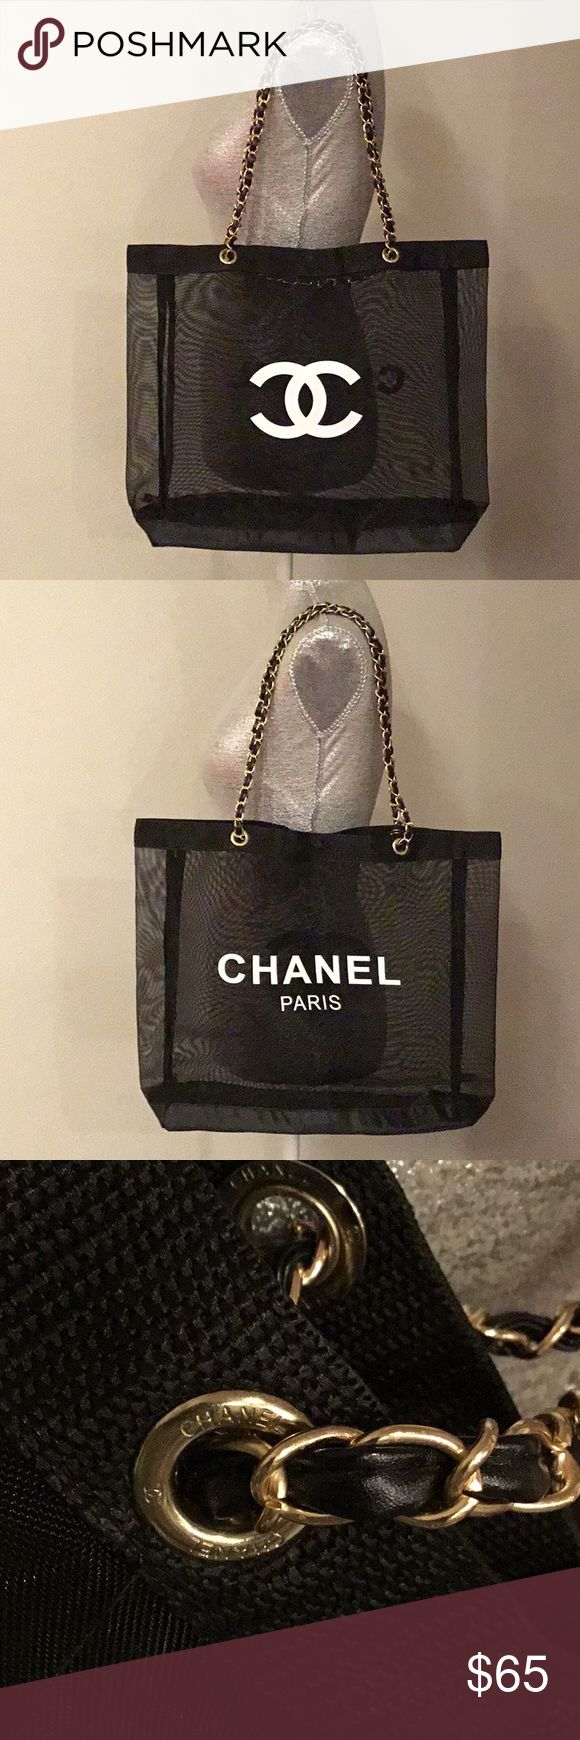 """Authentic Chanel Mesh Gold Chain Tote Bag VIP New CHANEL  Authentic VIP Beauty Gift MESH GOLD Chain Tote Bag.  Color: Black  Silver Chain  Magnetic Closure  """"CC"""" on one side, """"CHANEL PARIS"""" on the other side.  This is a VIP gift item, does not comes with hologram stickers, dust bag, authenticity card or box.  Brand new  It is a gift bag from chanel with a required amount spent. It is not for sale in the store.  It has a size approximately 15"""" x 14"""" x 4"""" and the silver hard wear strap drop is…"""